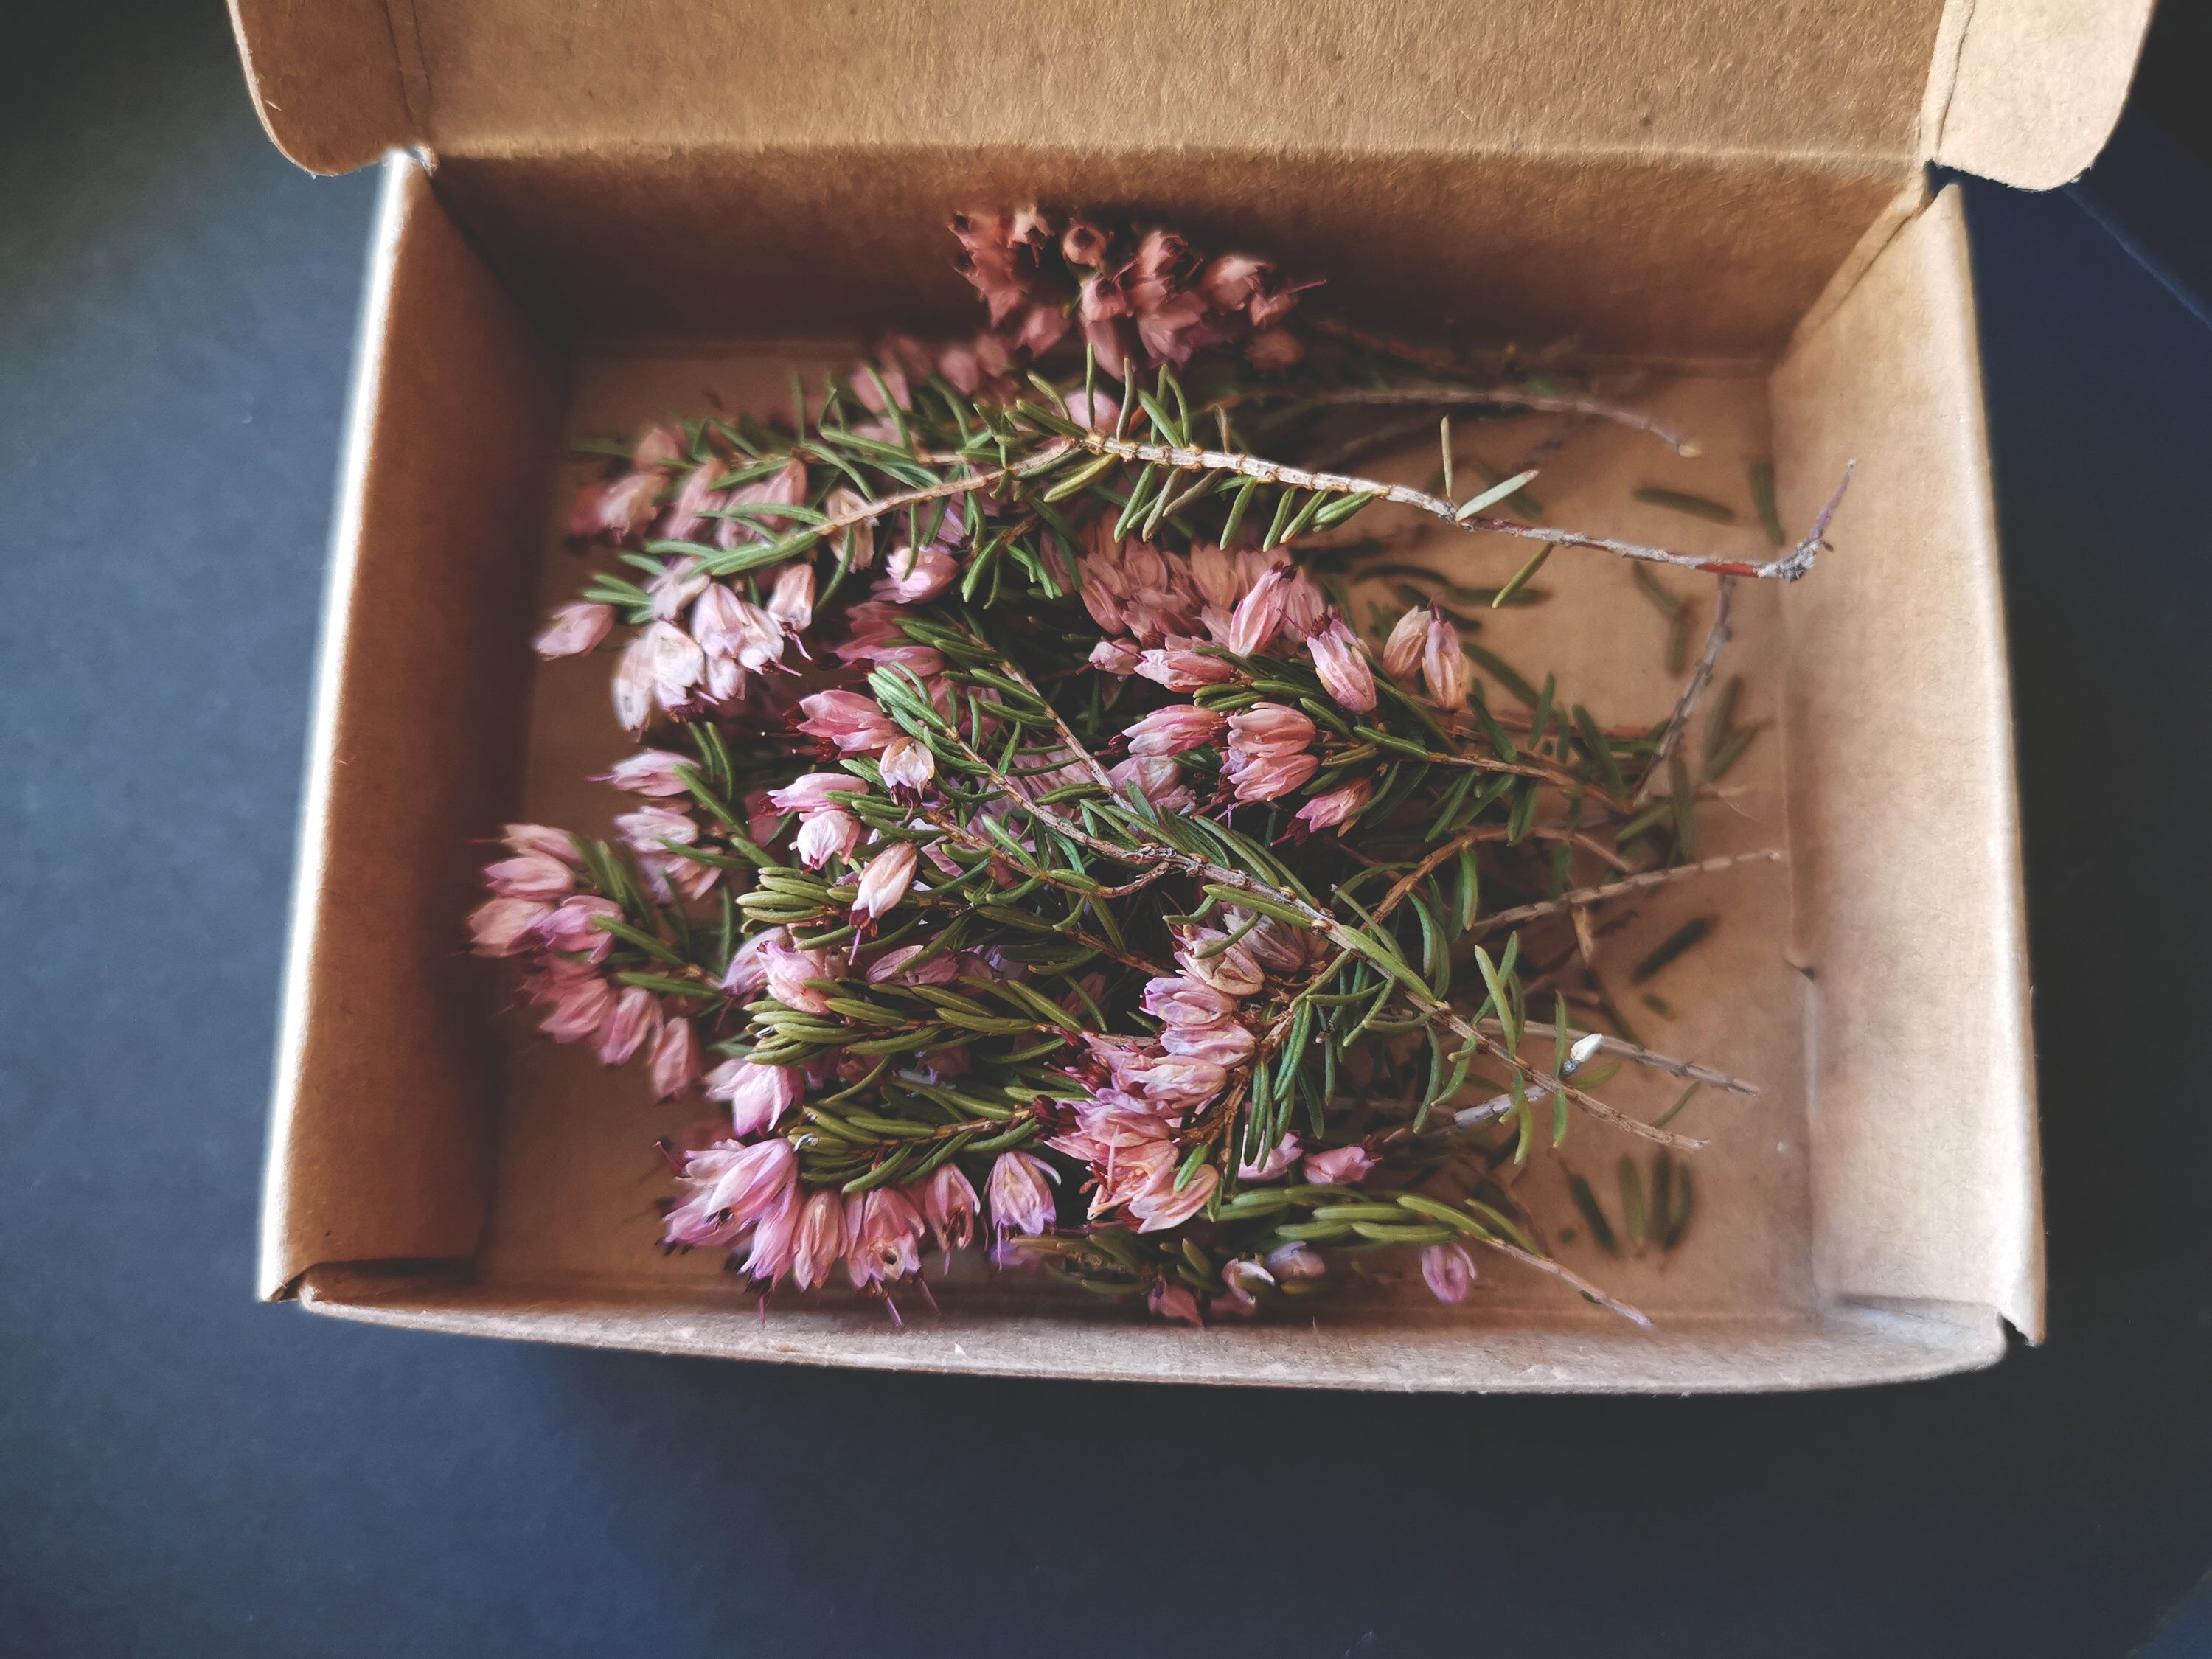 25 Pieces Dried Heather Dried Pink And White Heather Wild Dried Heather For Crafting 25 Pieces Pack Dried Flower Petals Dried Plants In 2020 Flower Petals Dried Flowers Dry Plants